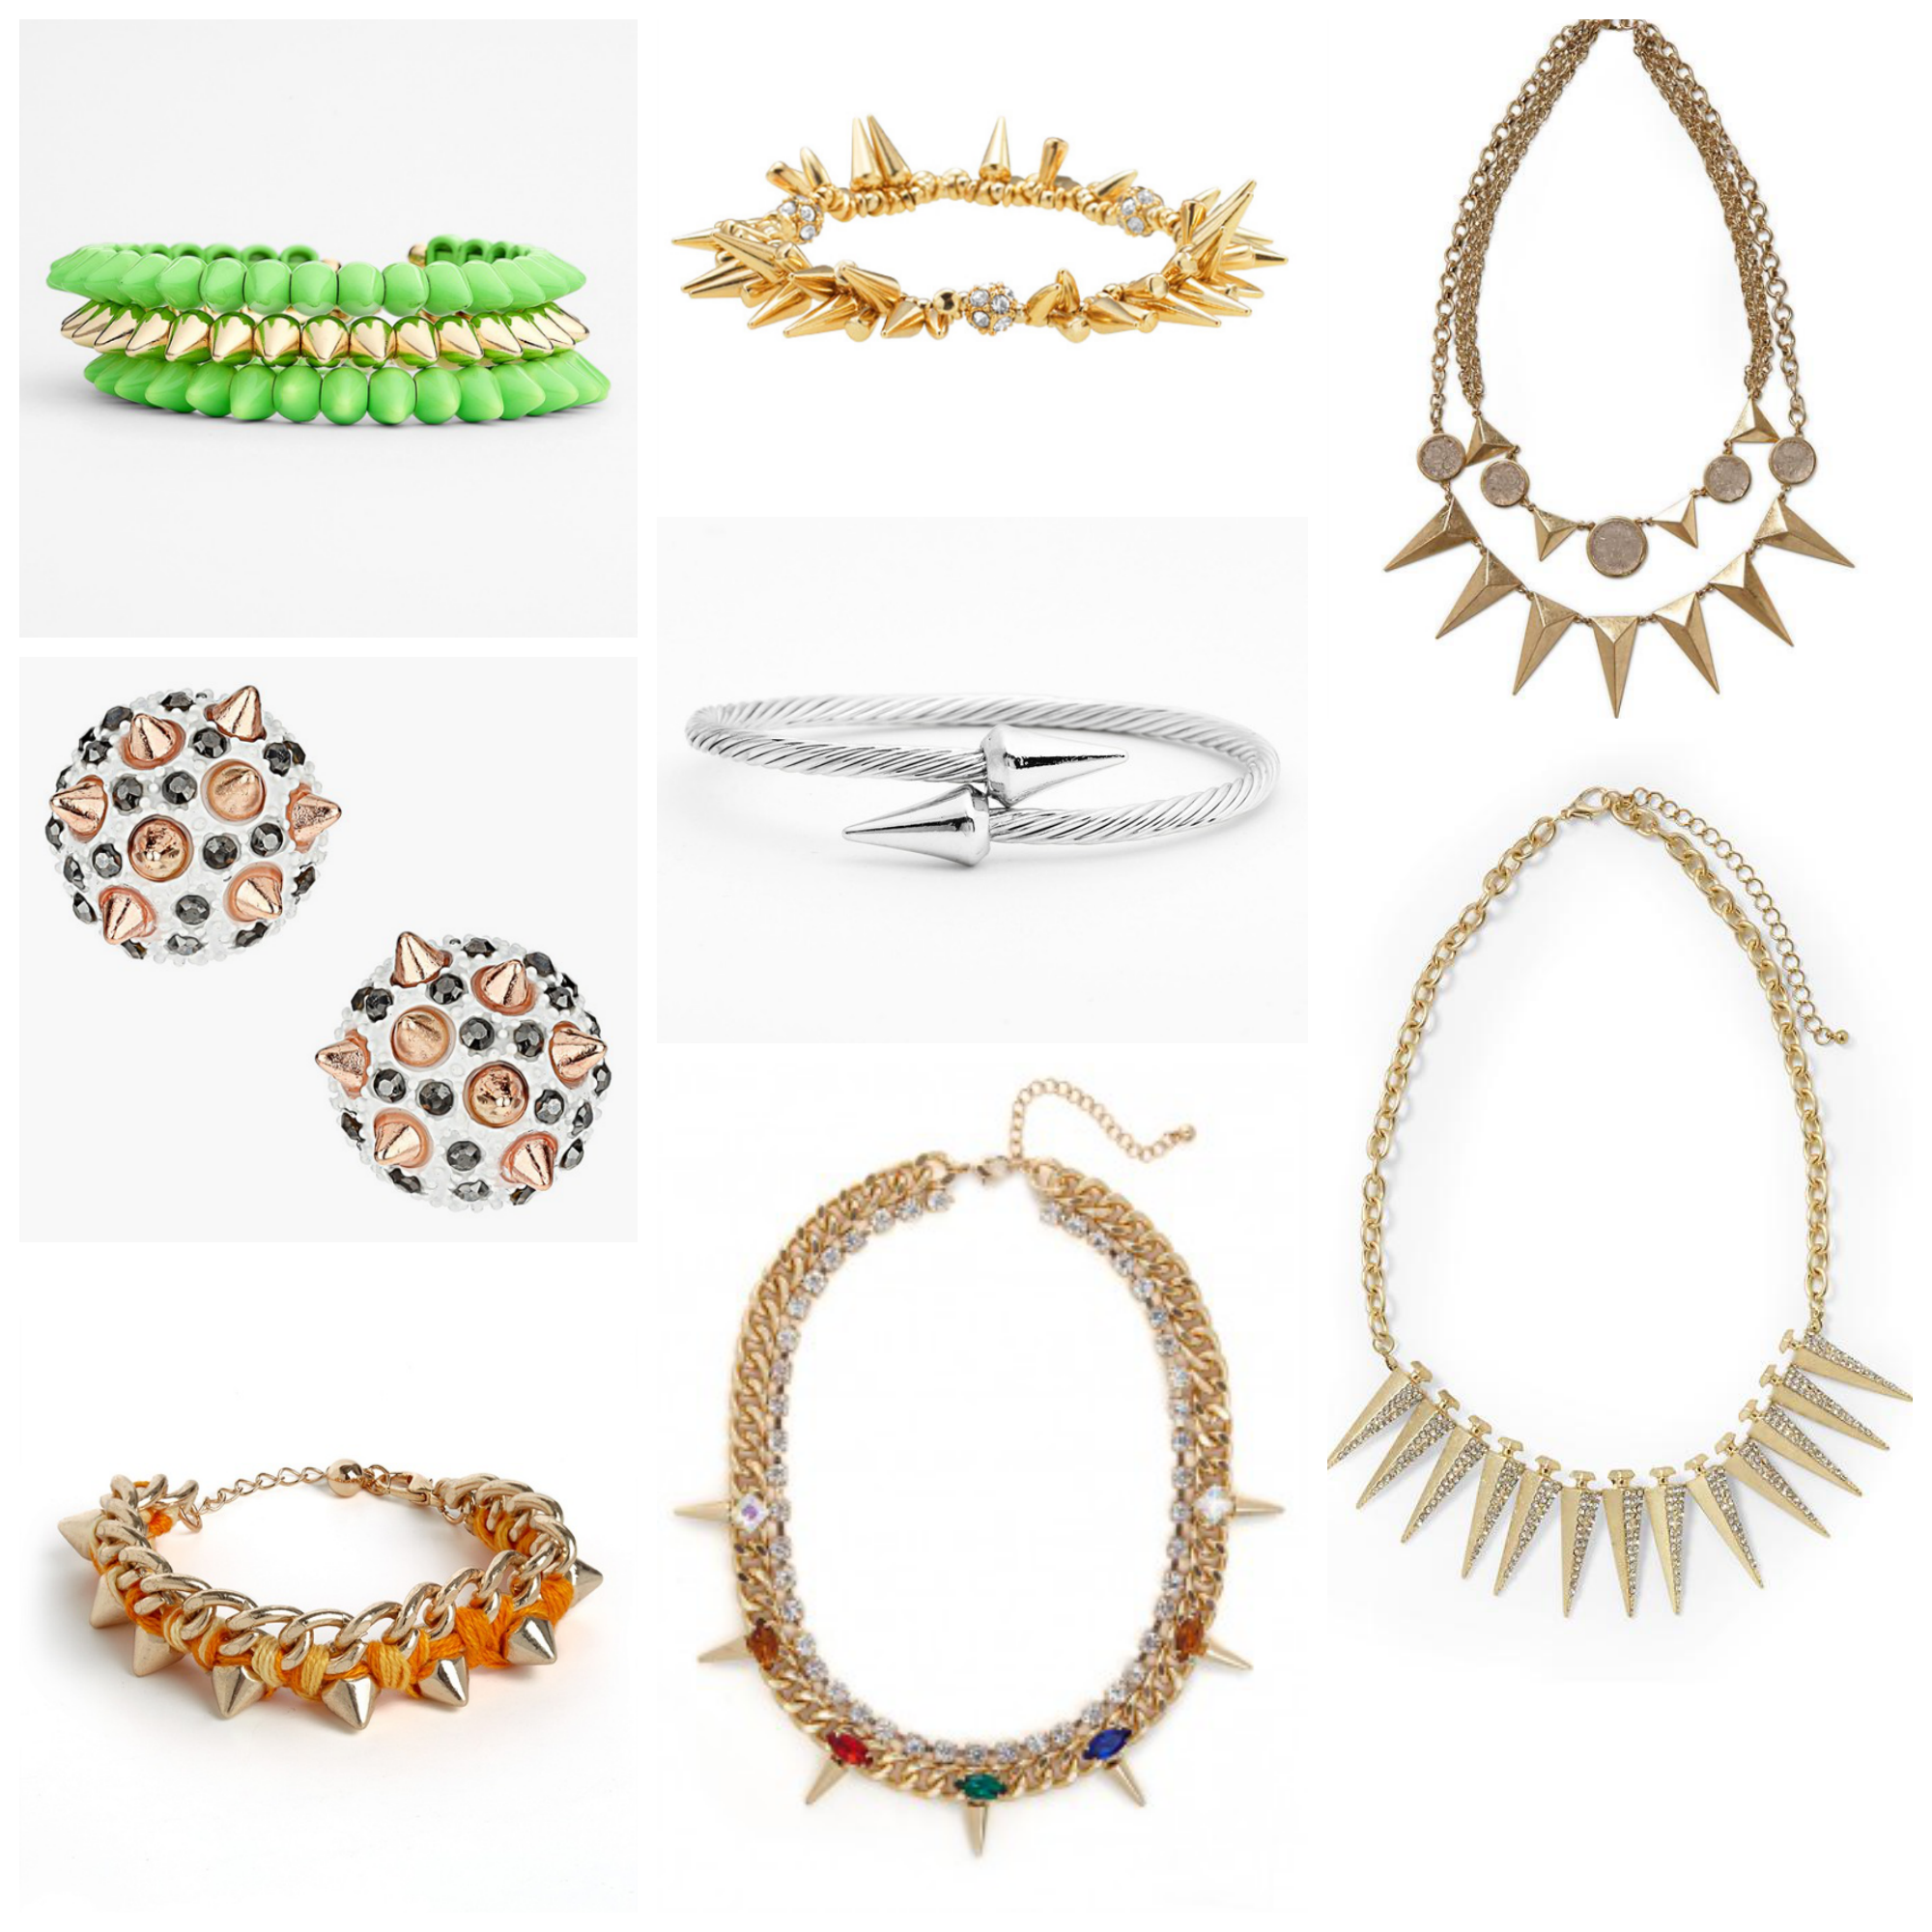 Spiked Jewelry